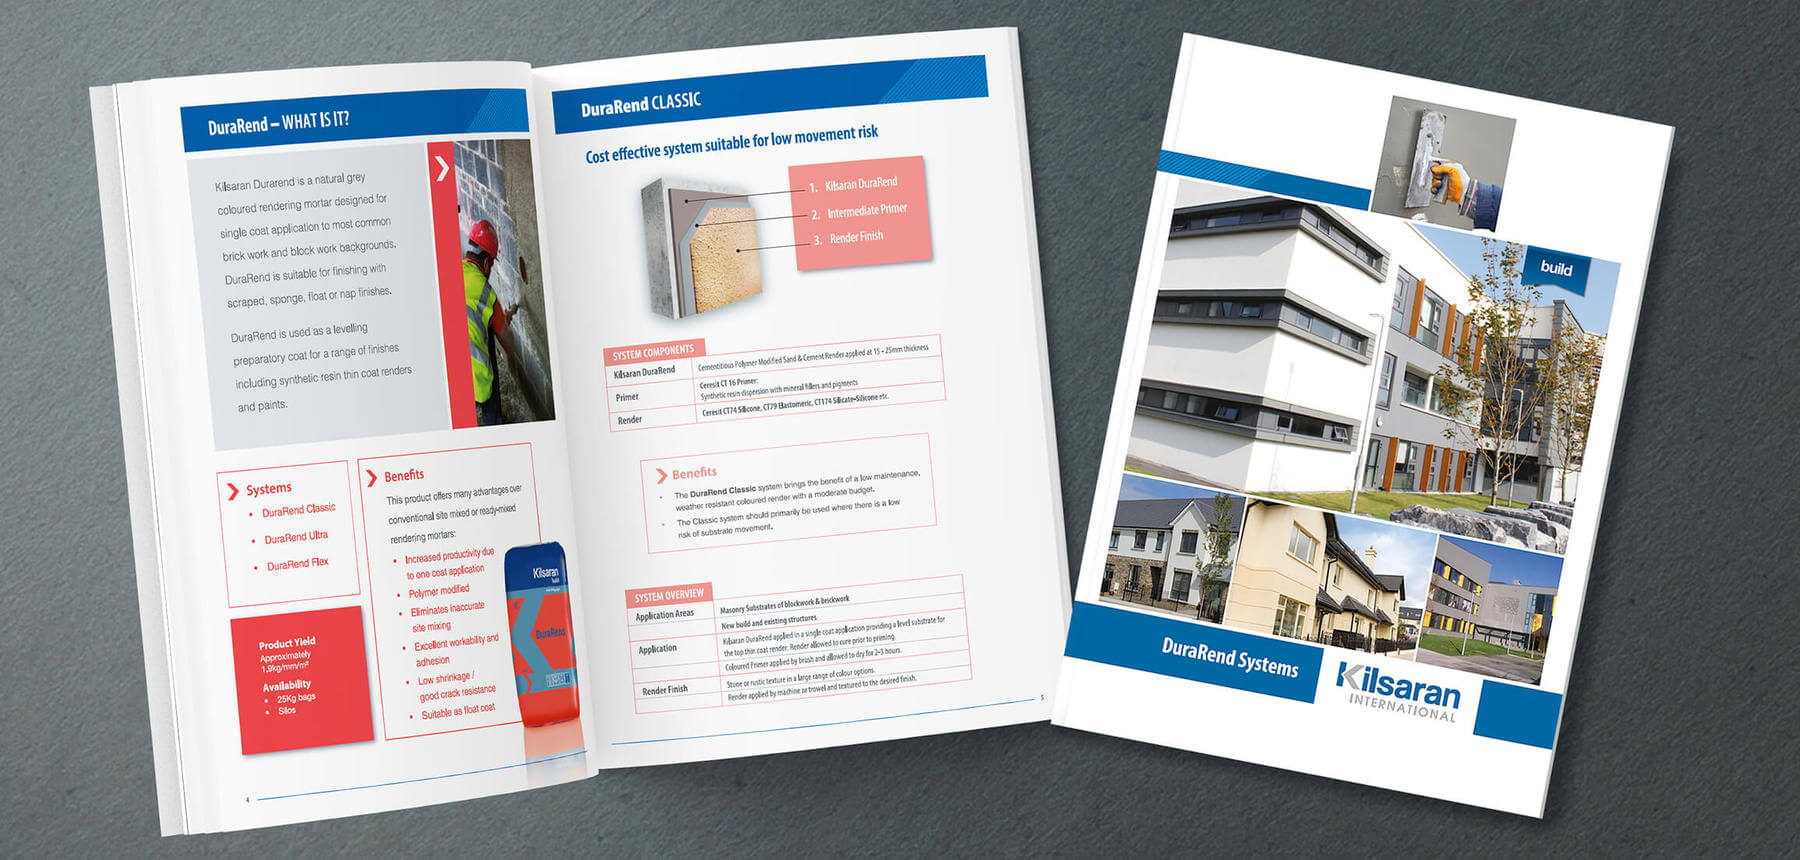 Lilsaran DuraRend Systems brochure 3D visual